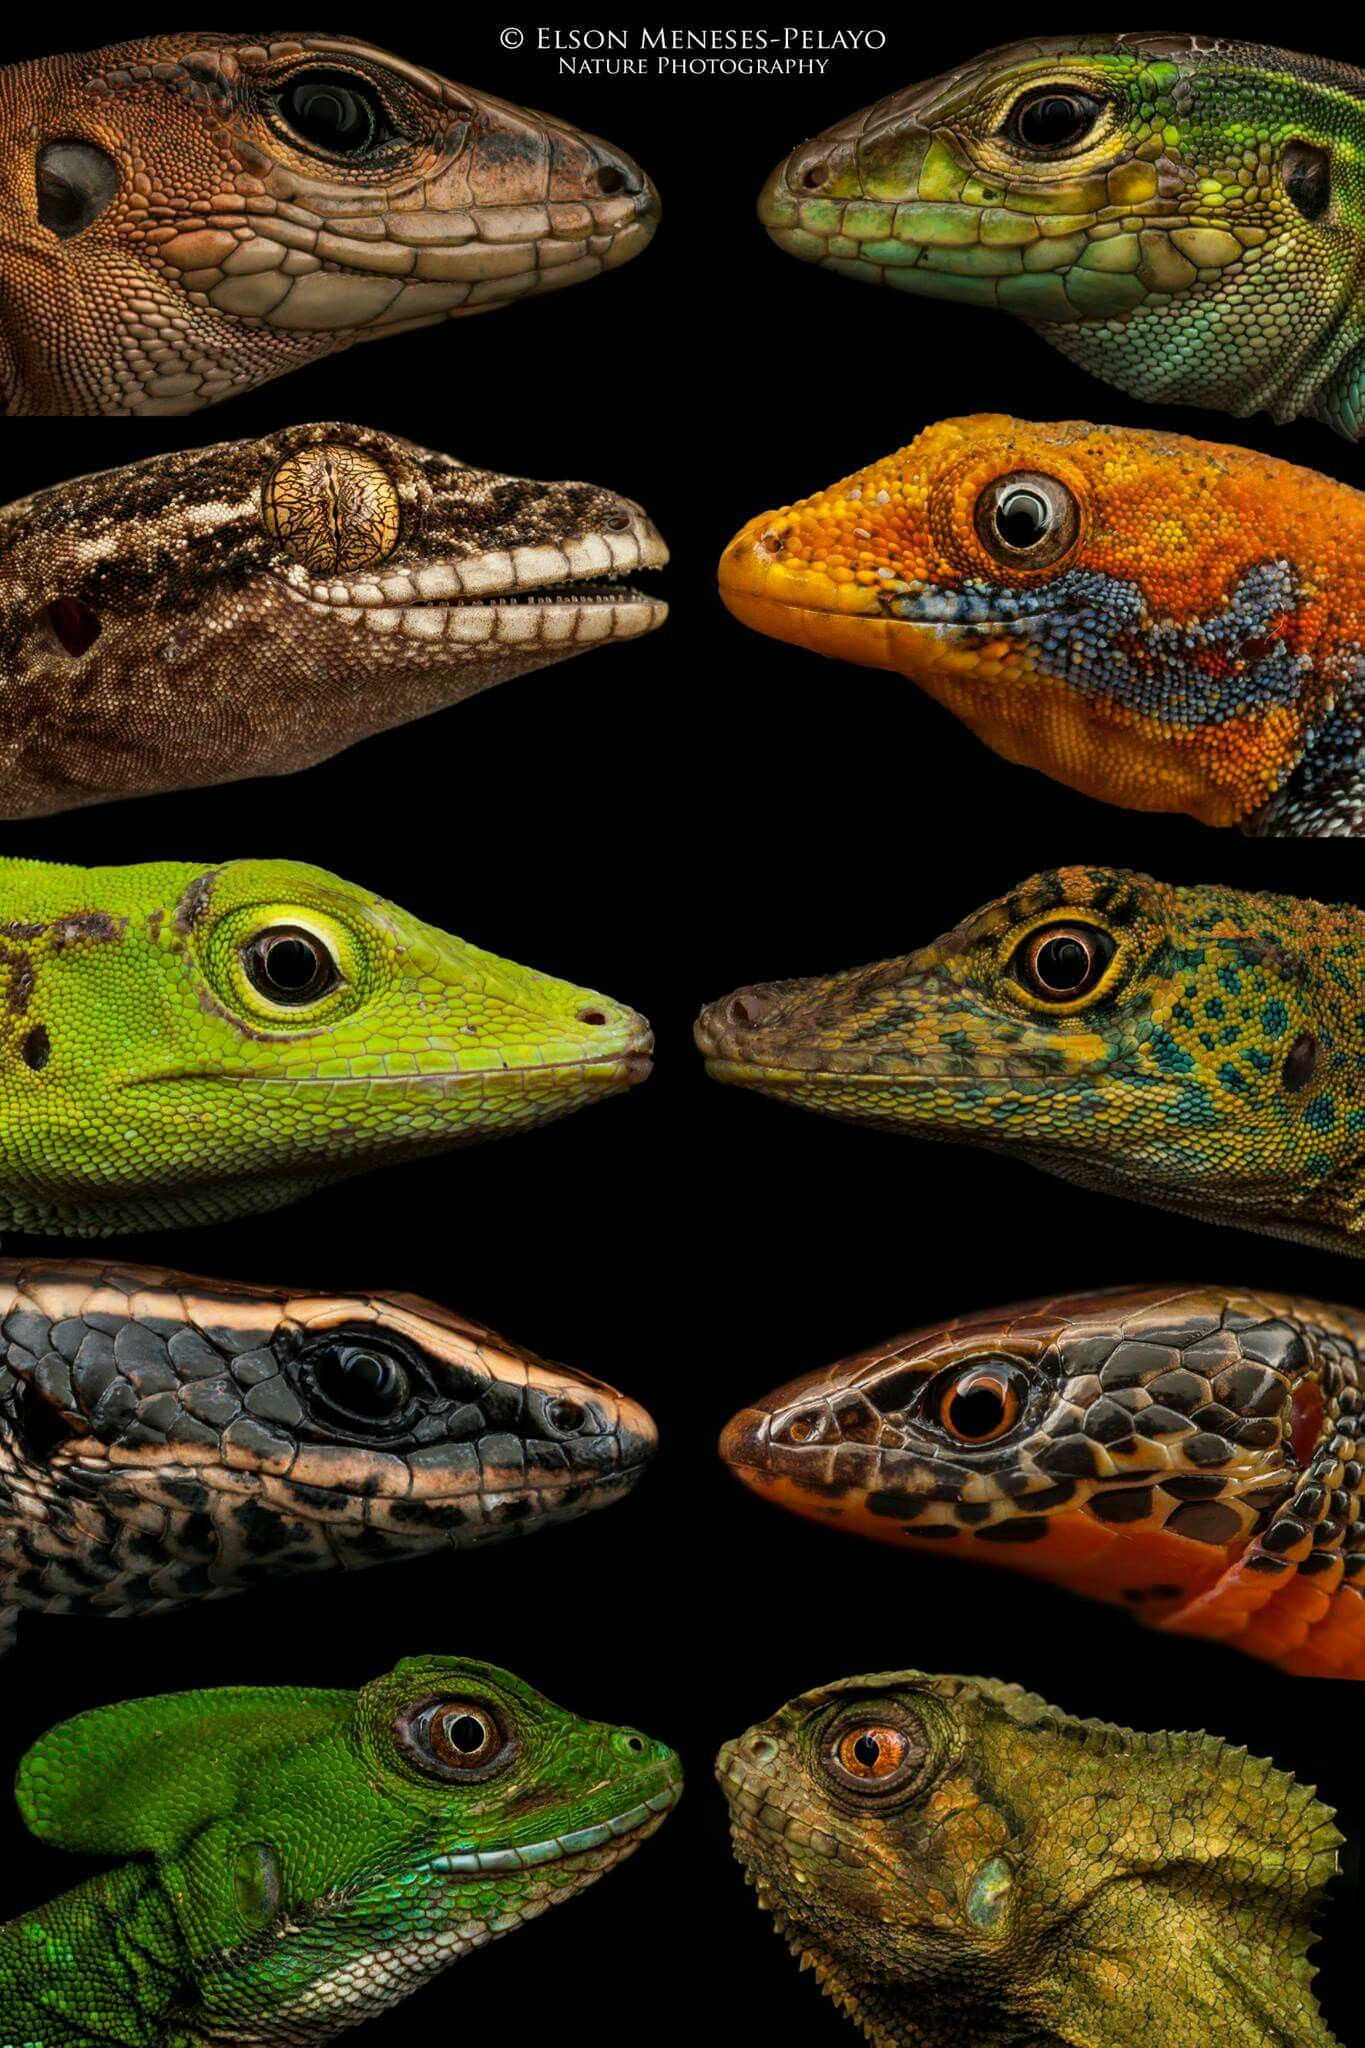 Lizards Lizards and more Lizards by Elson Meneses-Pelayo / Nature ...